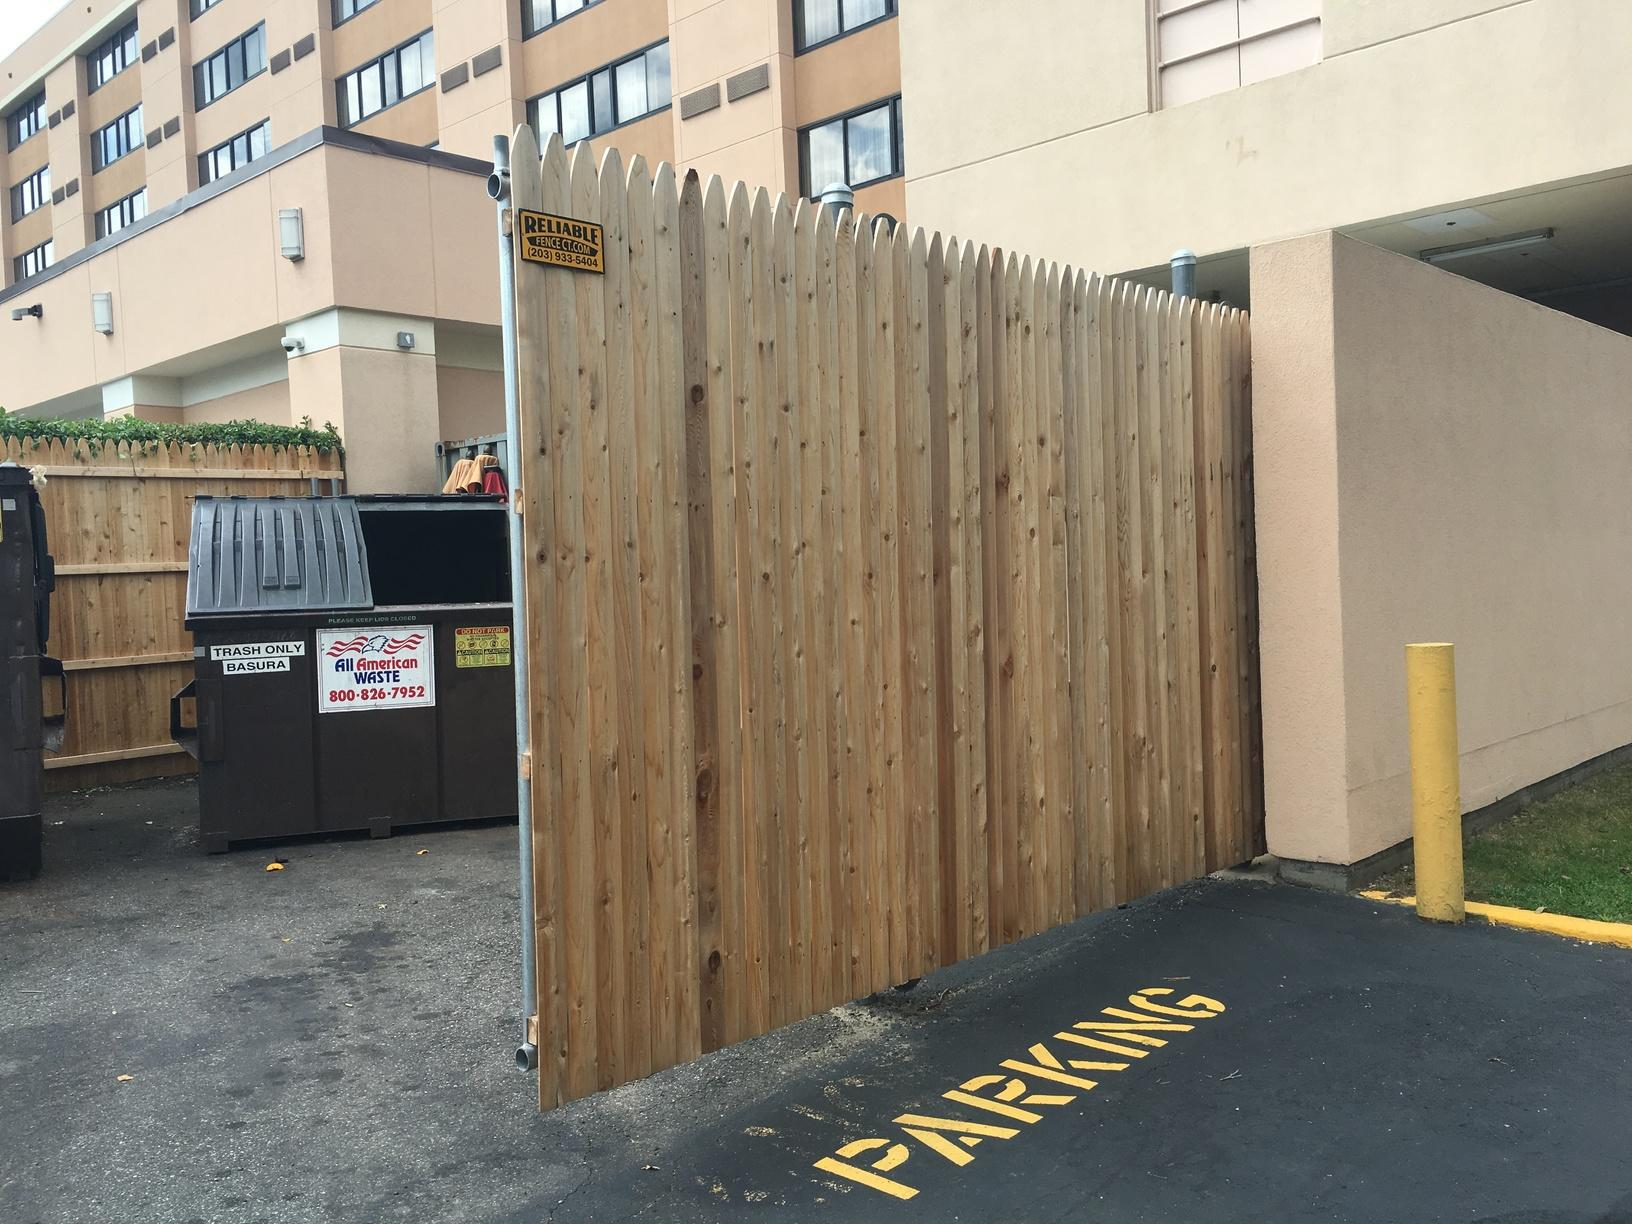 Commercial Wood Fence Project in Shelton, CT